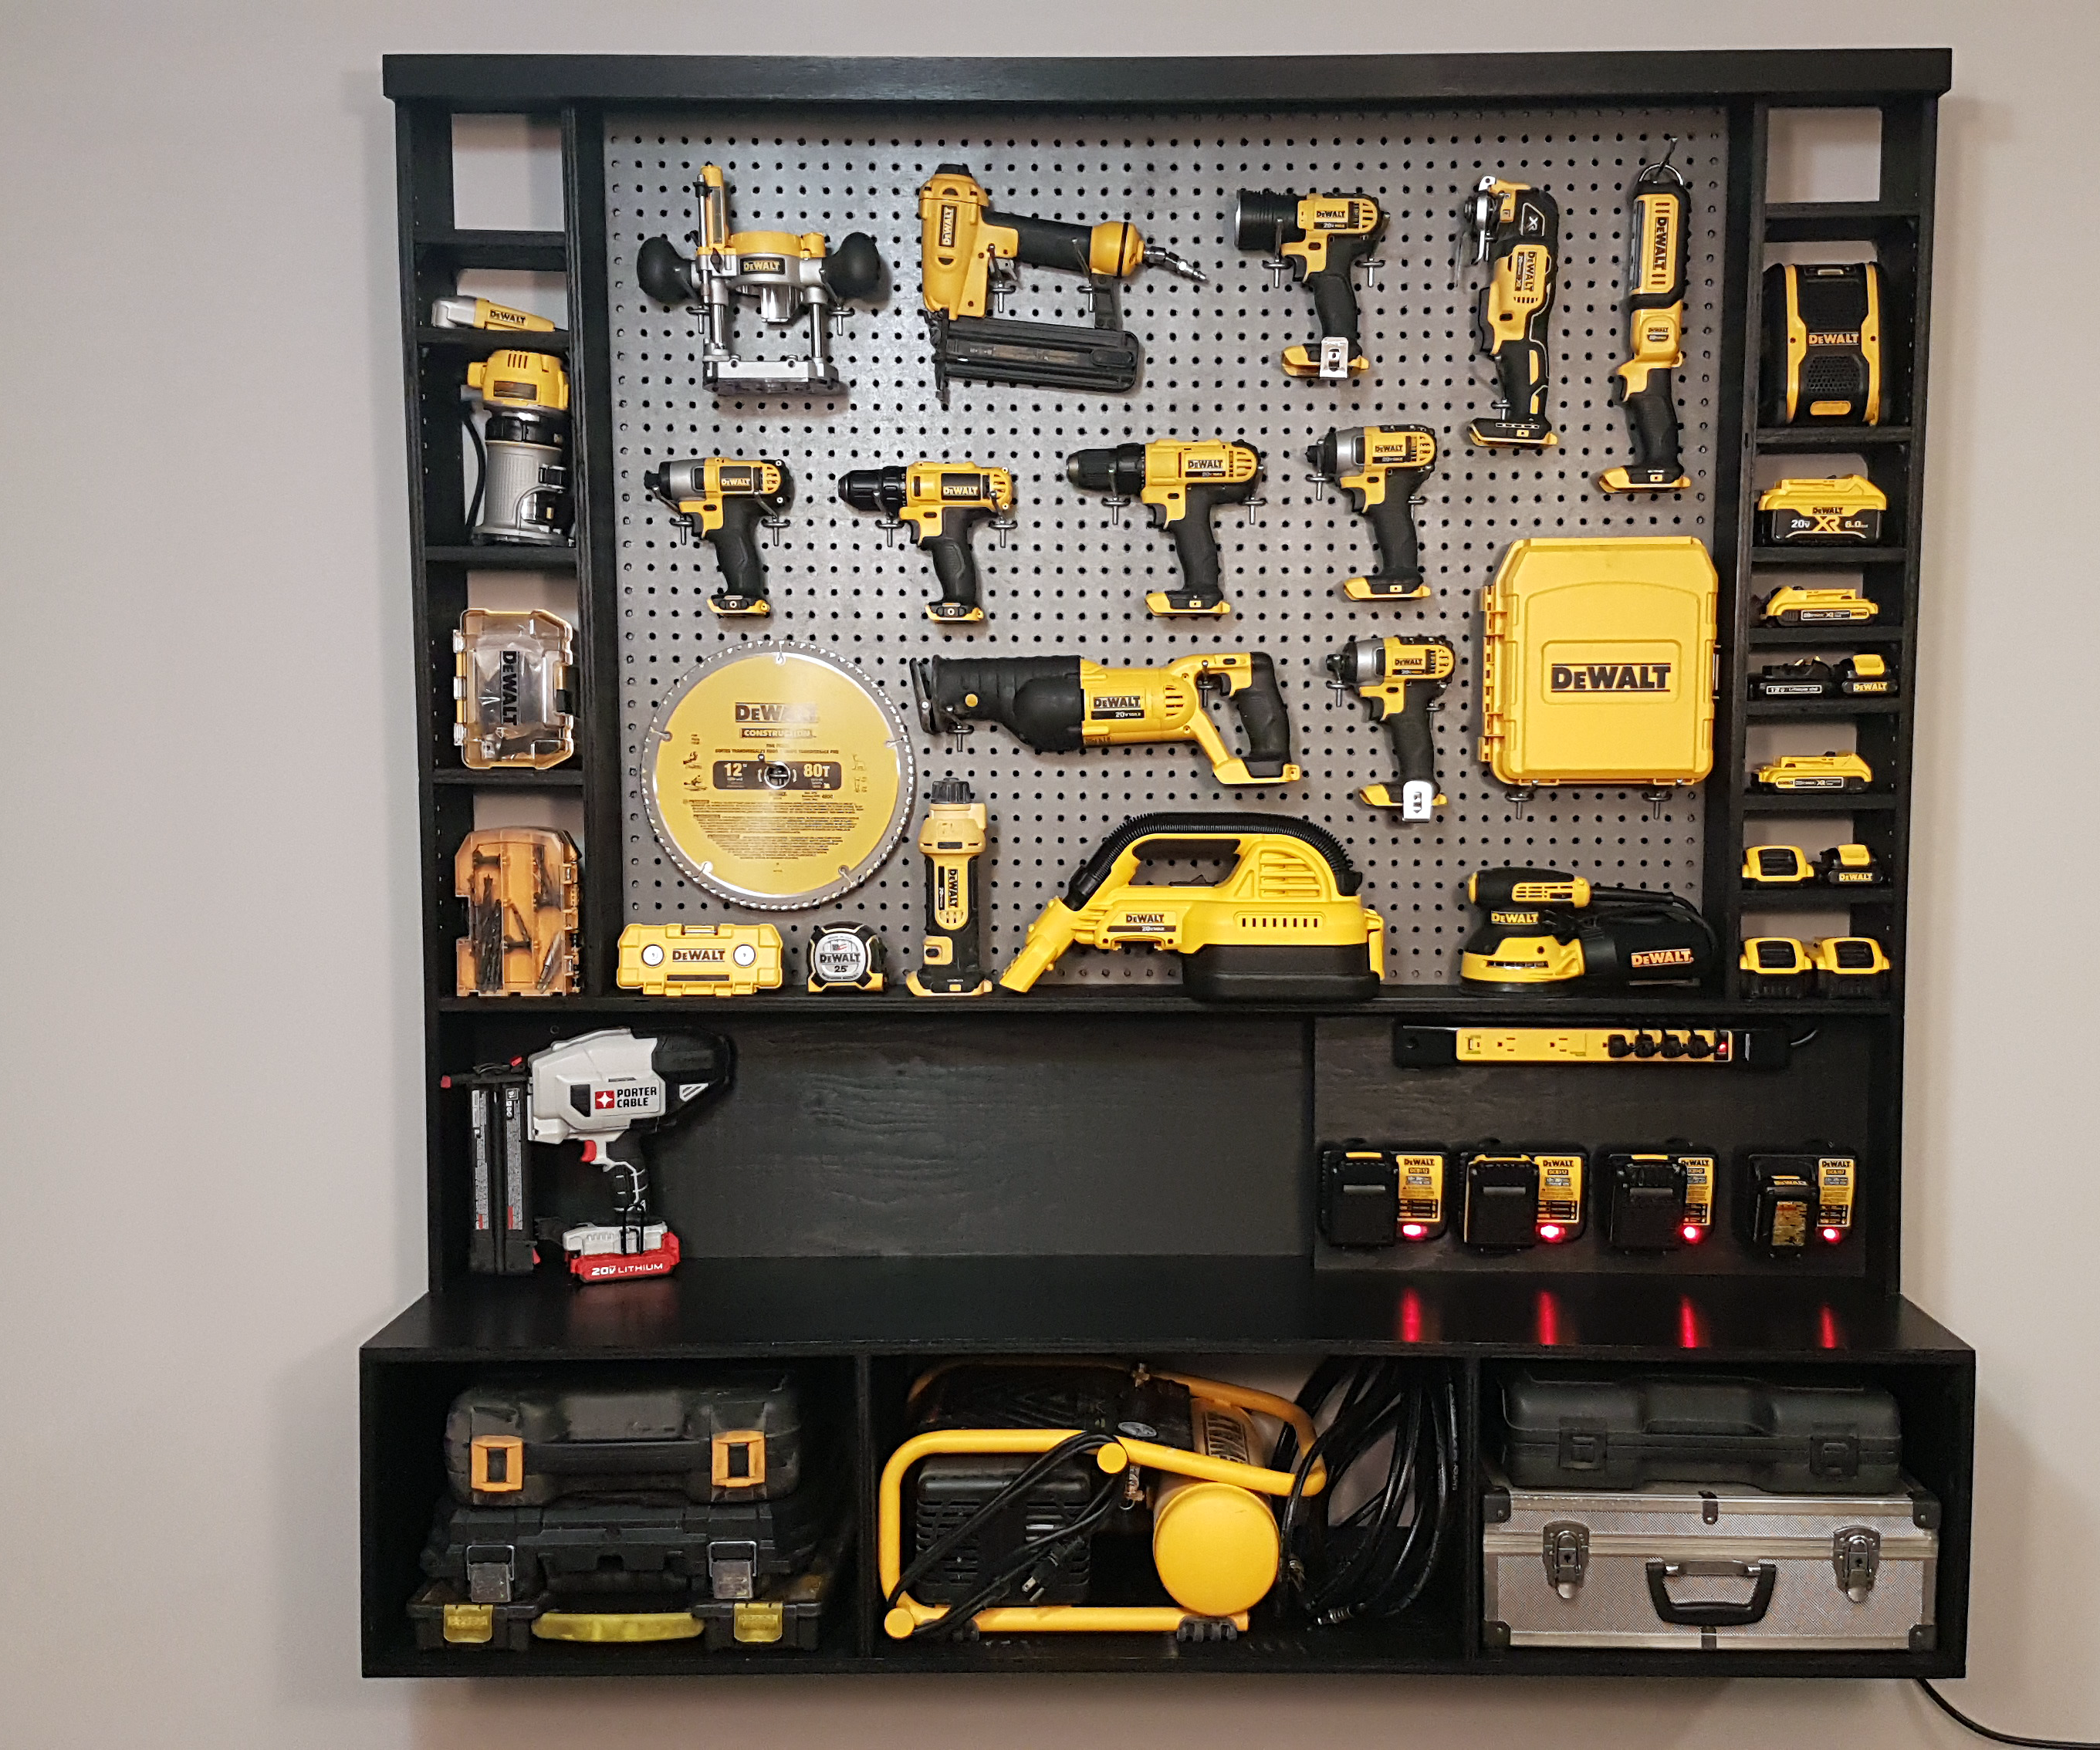 Diy Power Tool Storage W Charging Station 10 Steps With Pictures Instructables